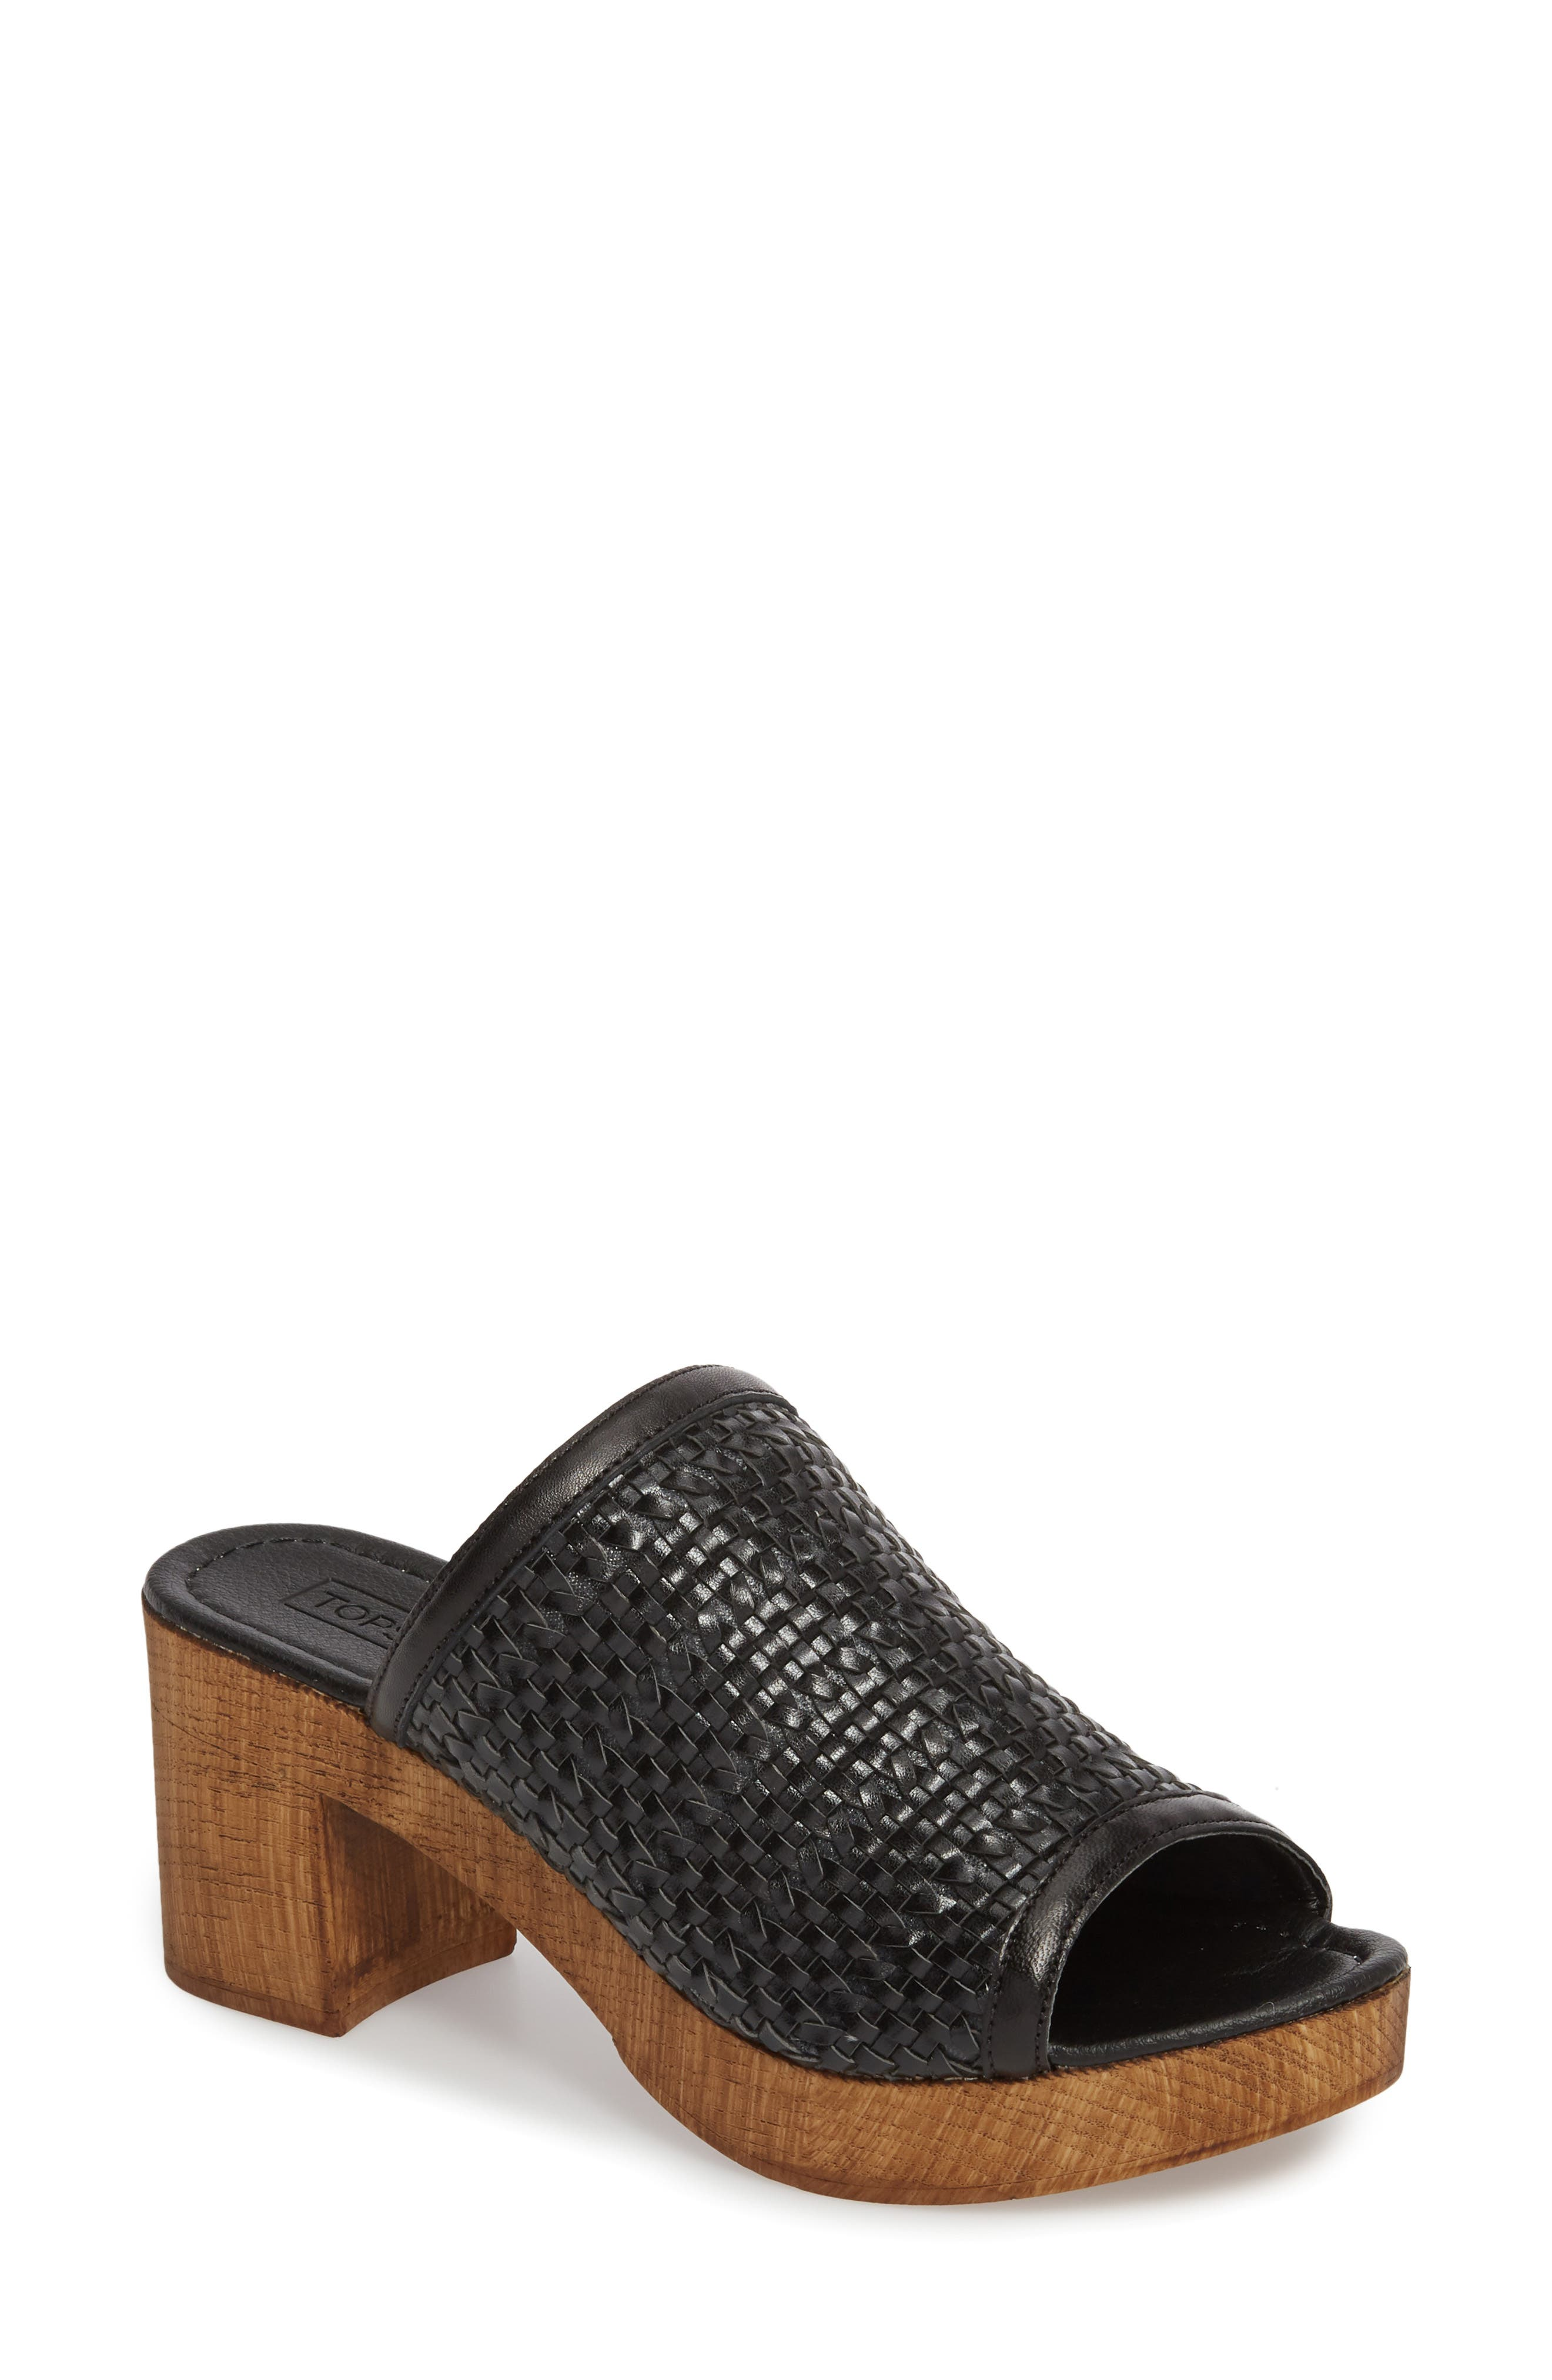 Village Woven Slide Sandal,                         Main,                         color, Black